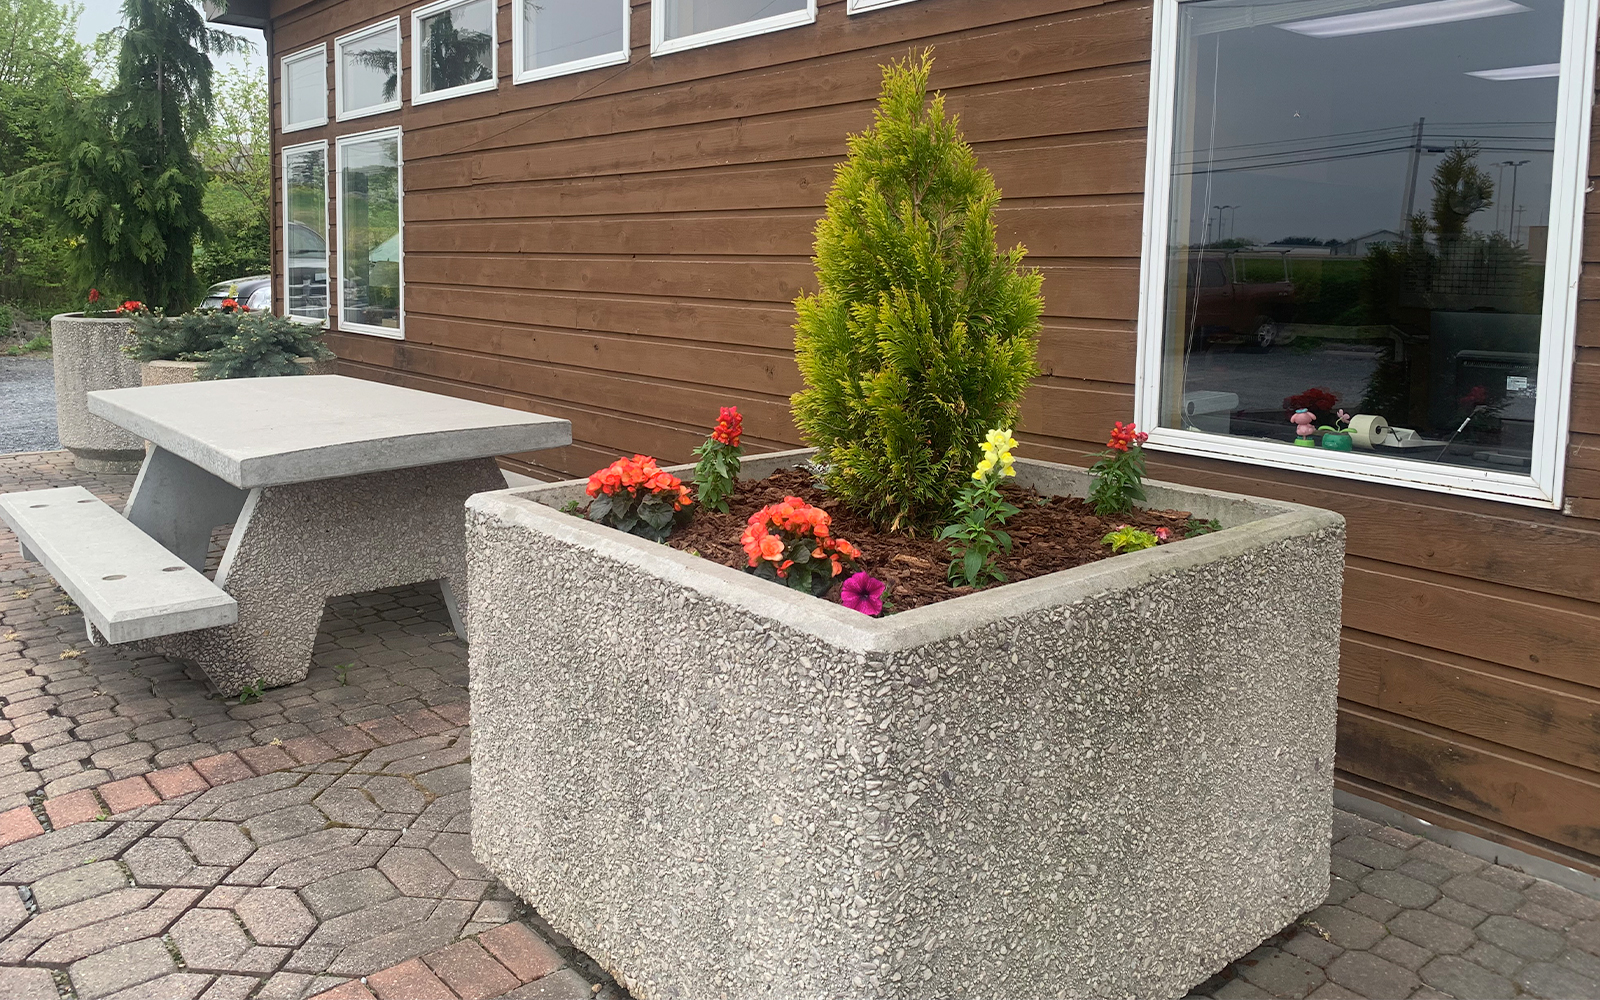 planters-and-picnic-table